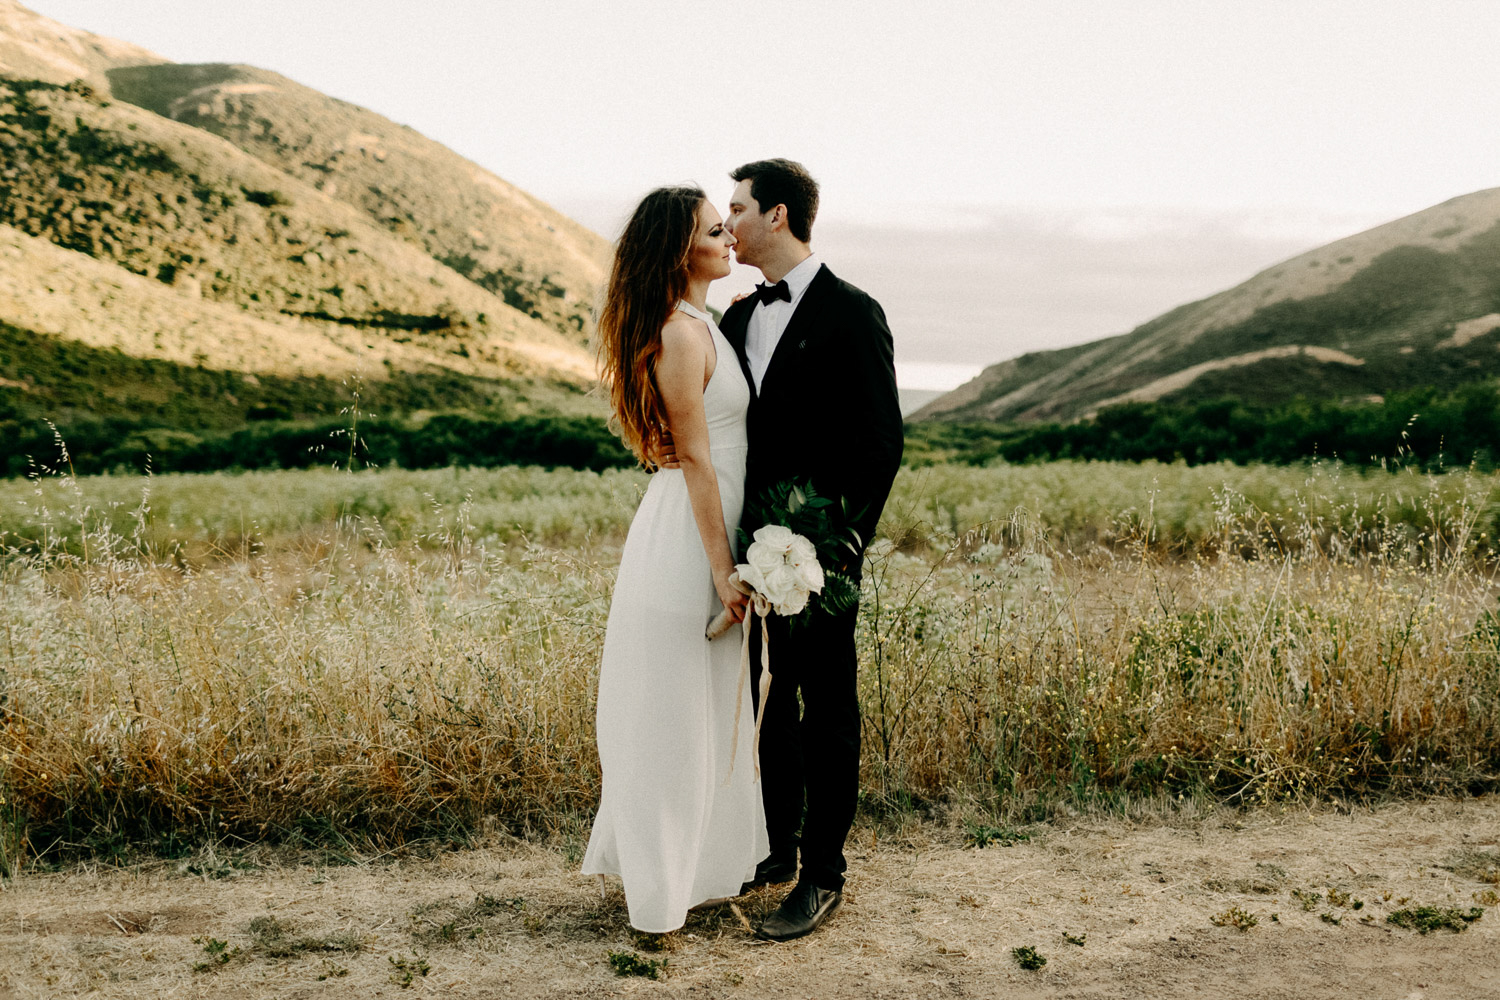 Image of groom and bride stand together in front the mountain